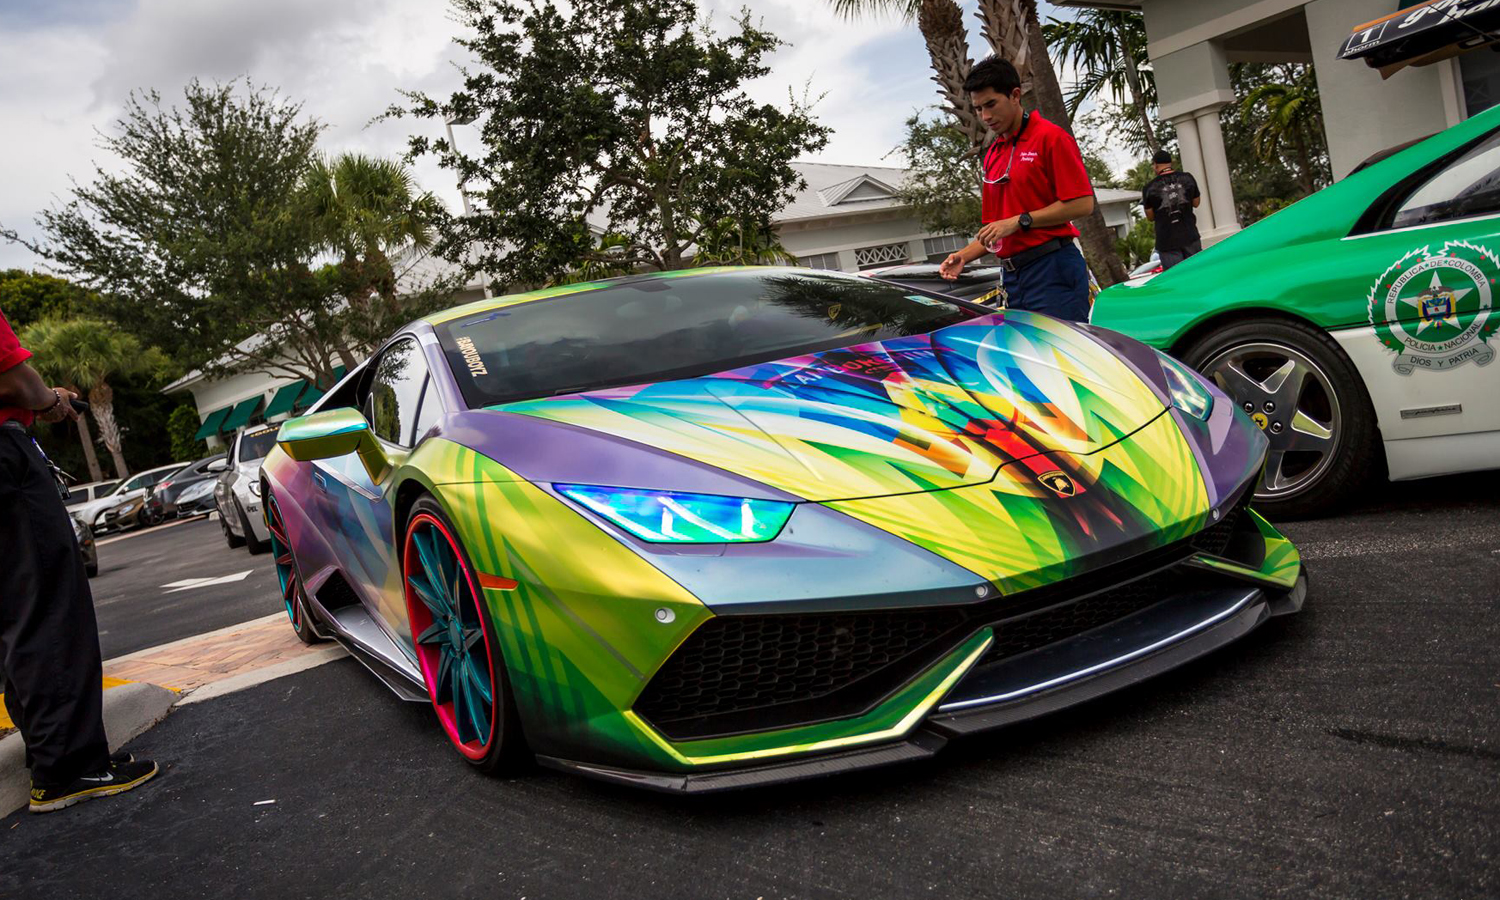 21 Reasons #Lamborghini is the Best Hashtag Ever